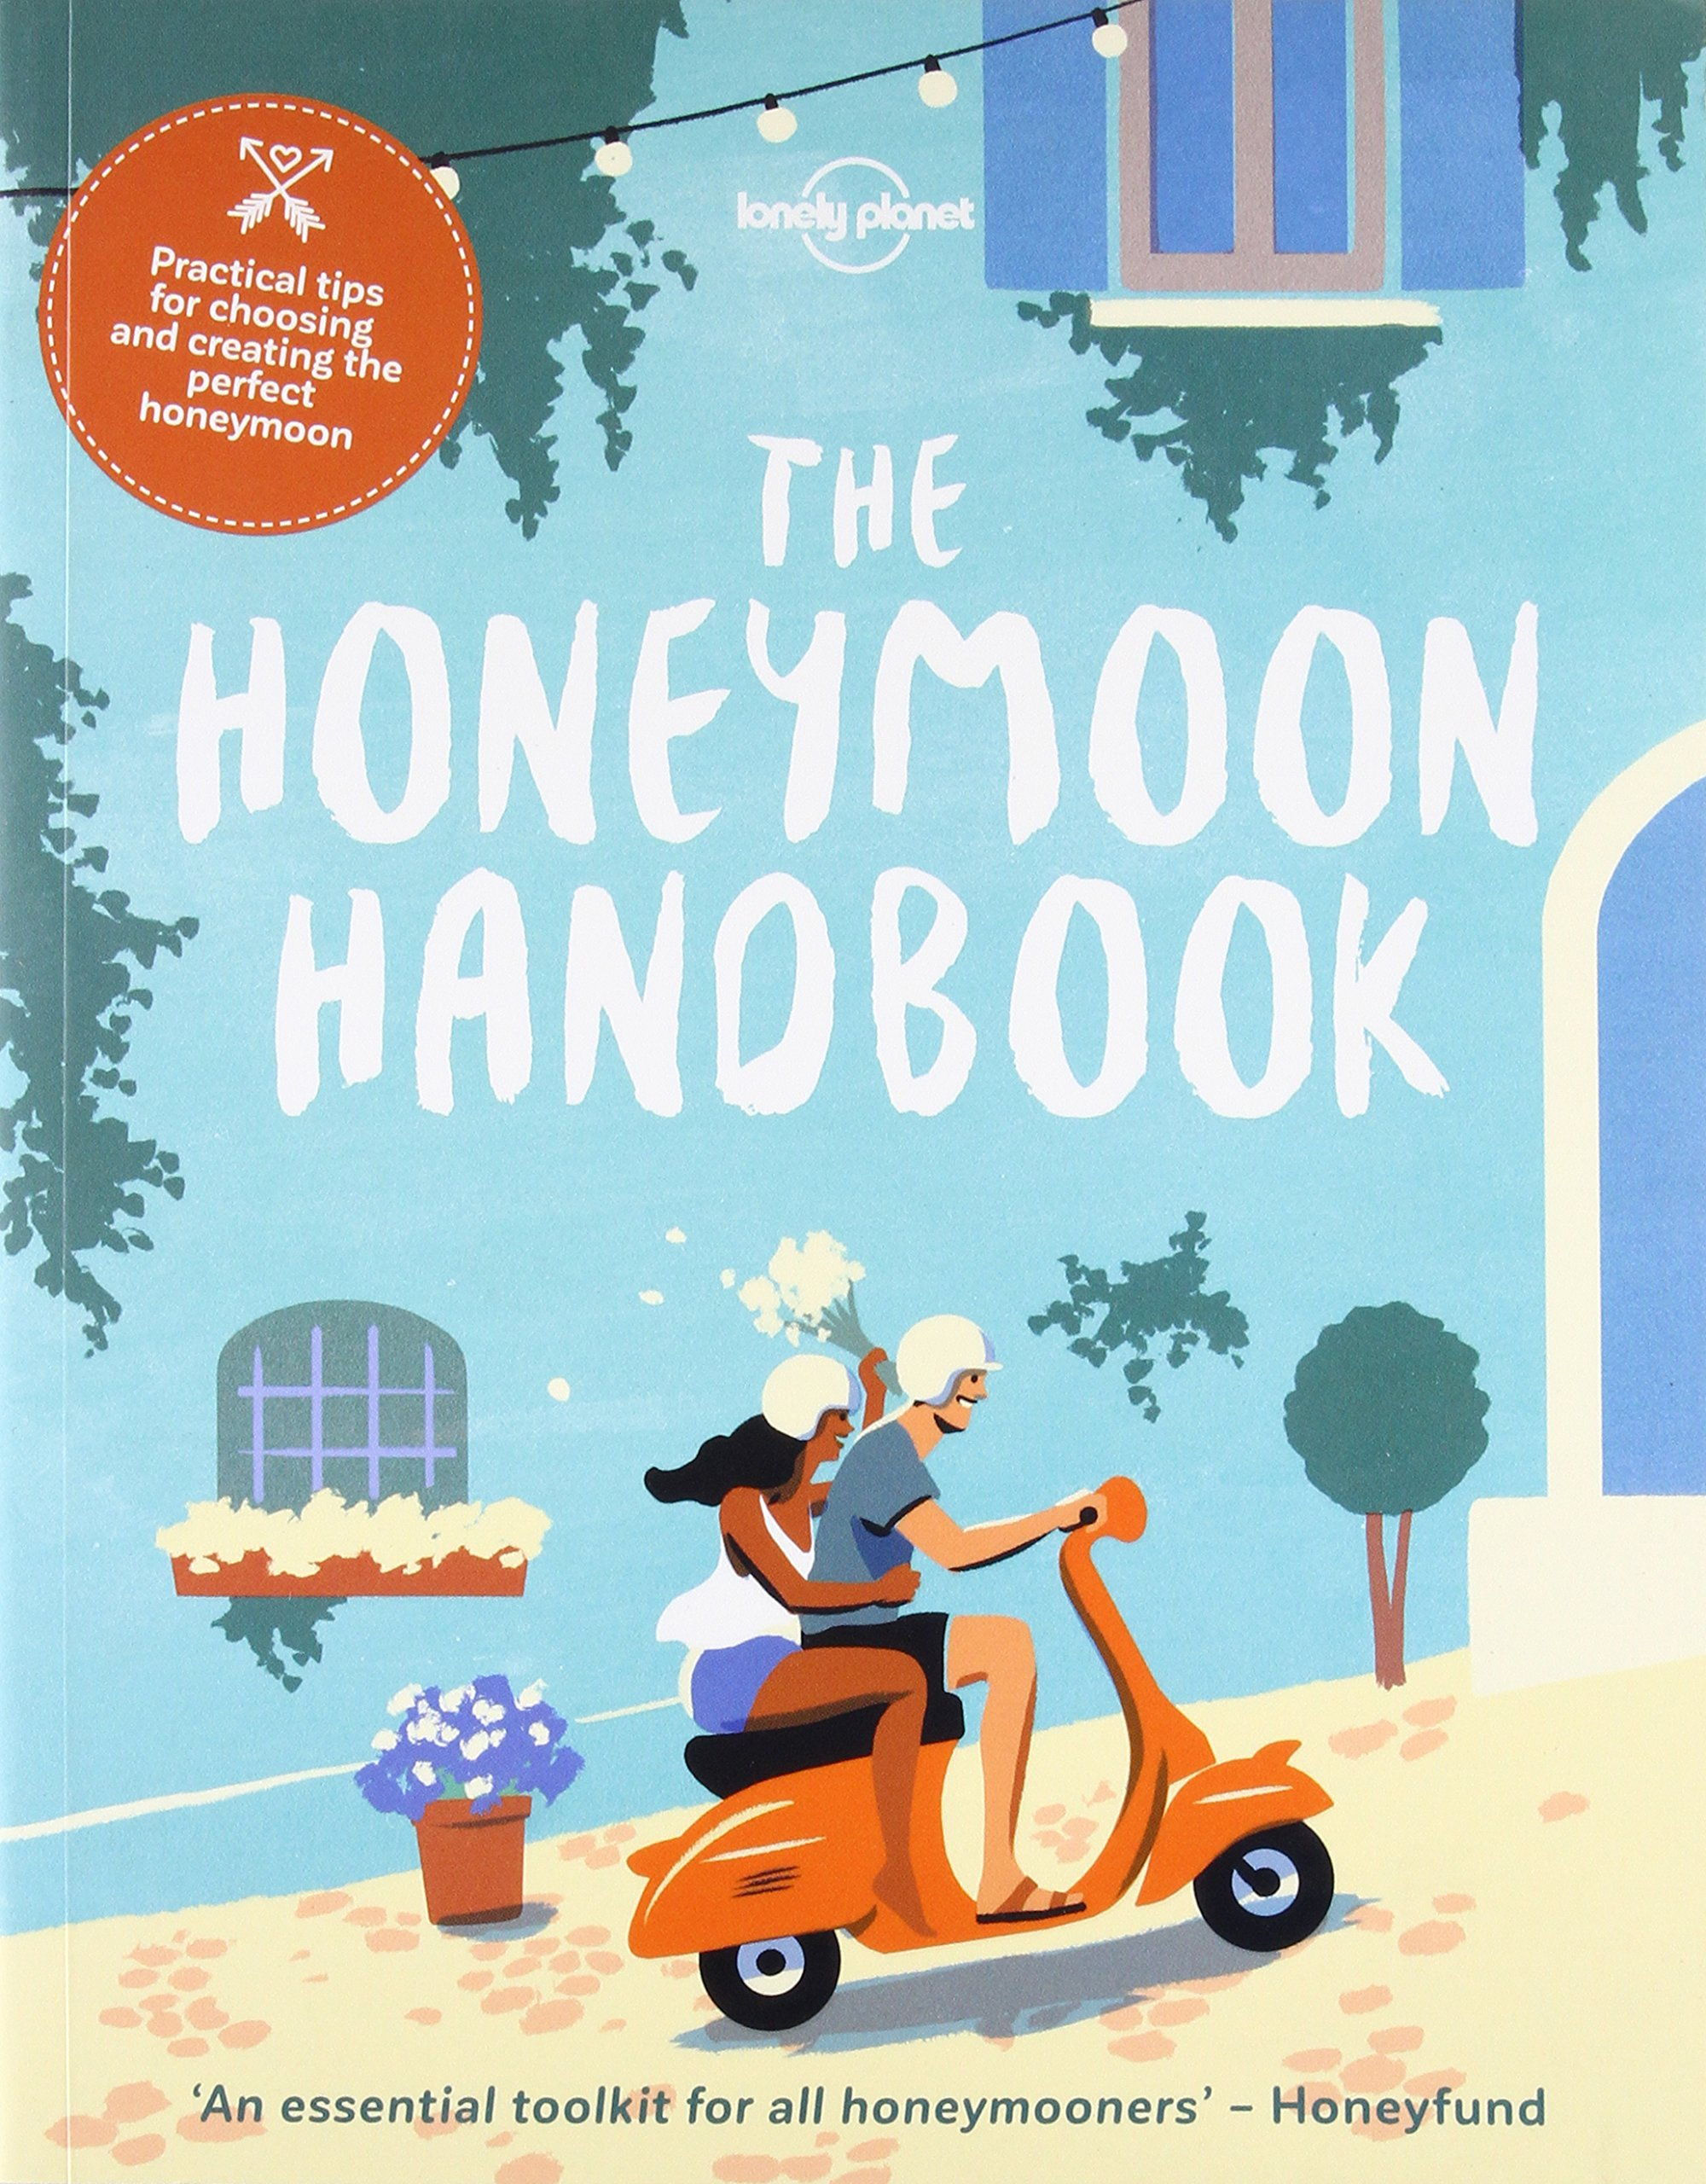 The Honeymoon Handbook  Practical Tips For Choosing And Creating The Perfect Honeymoon  Lonely Planet